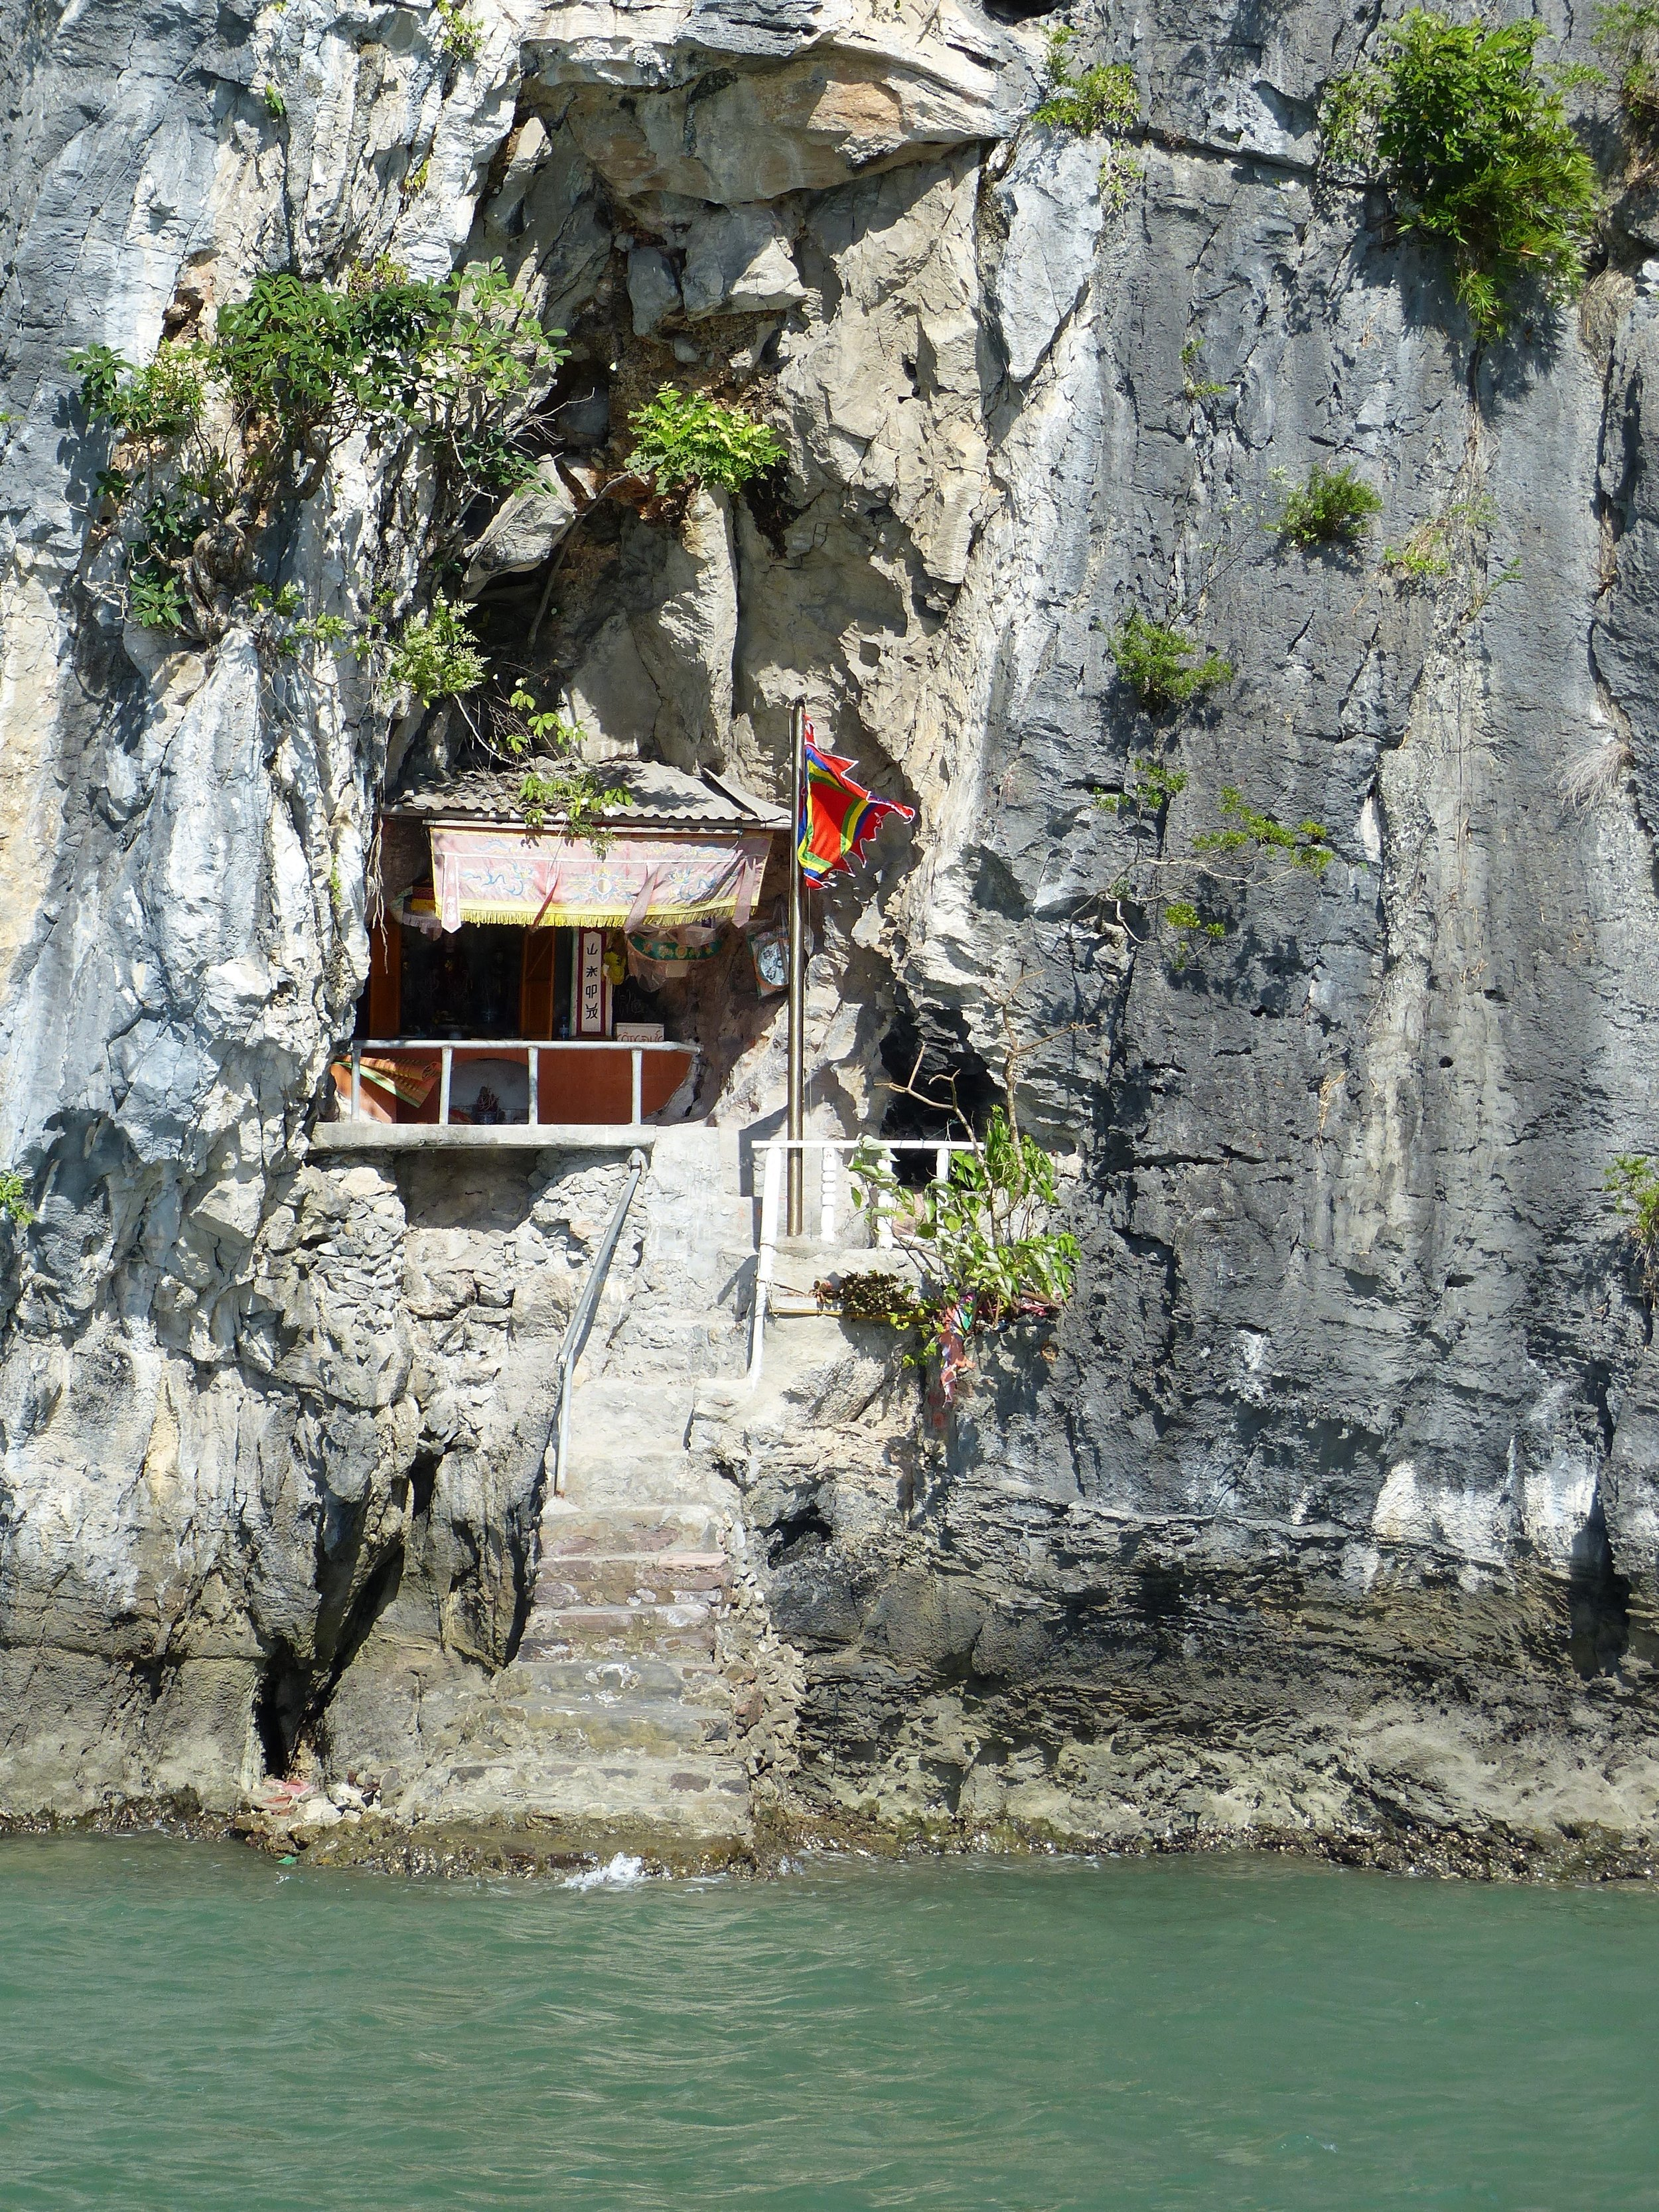 Is that a shrine cleaved into the rock?